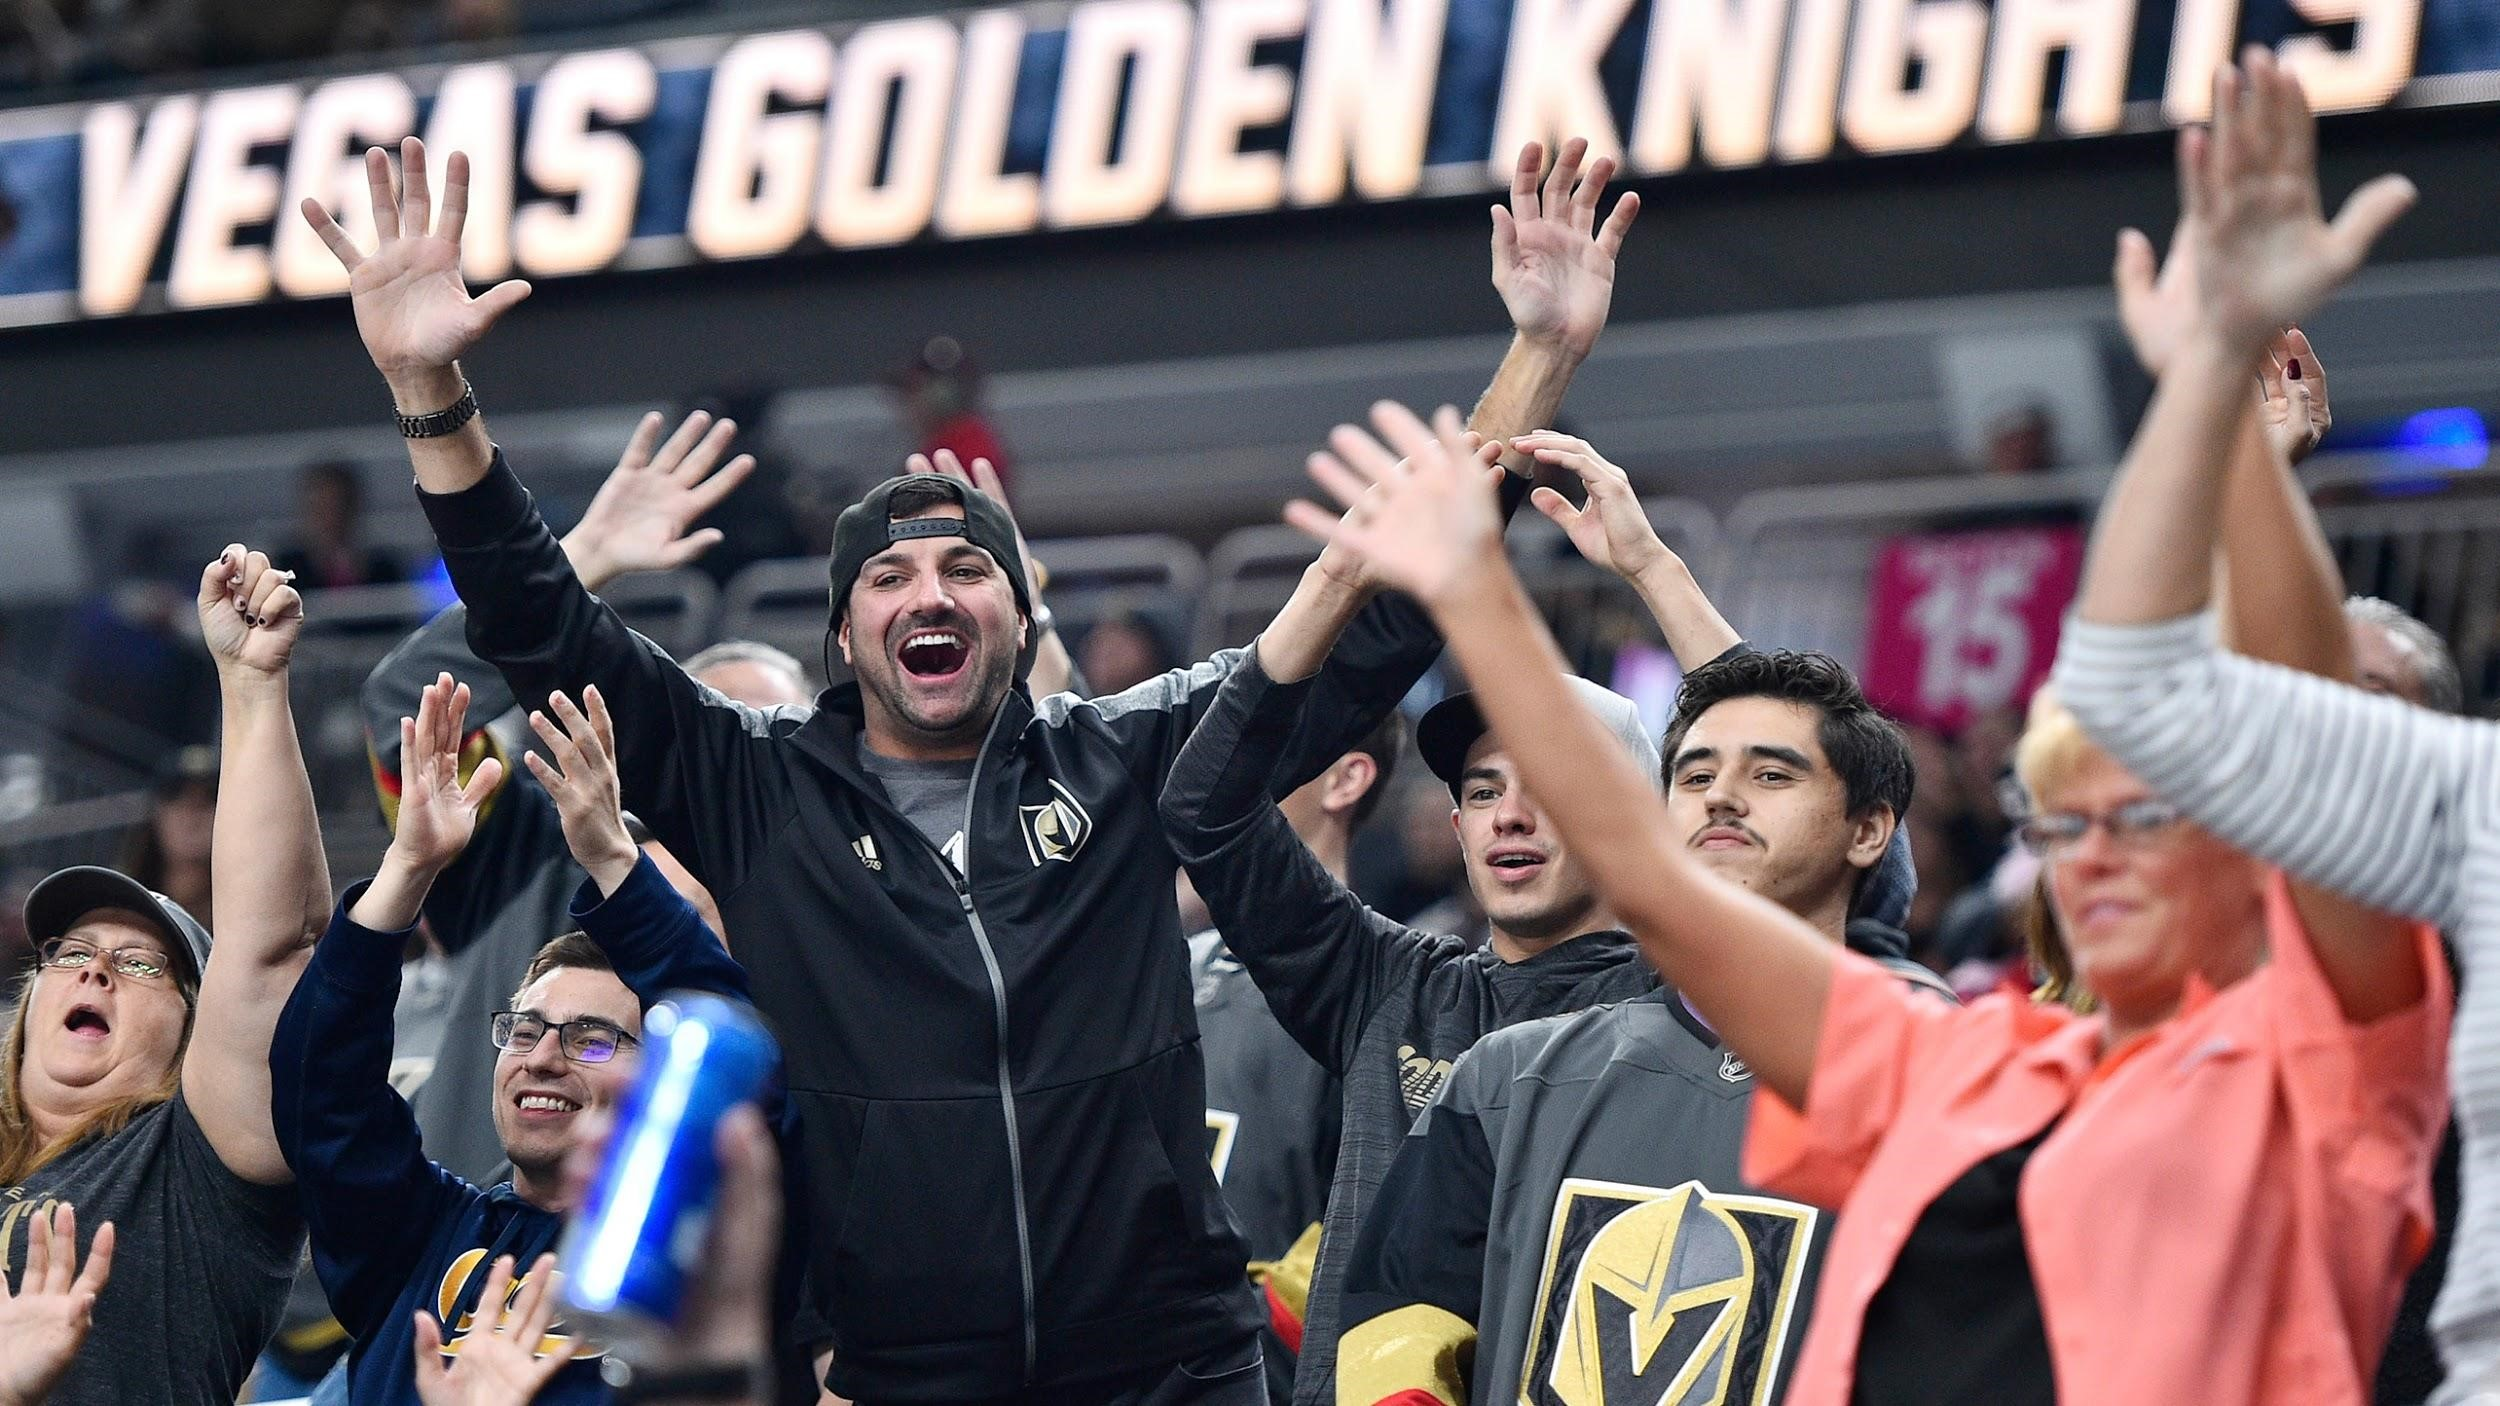 Las Vegas Golden Knights fans celebrating win